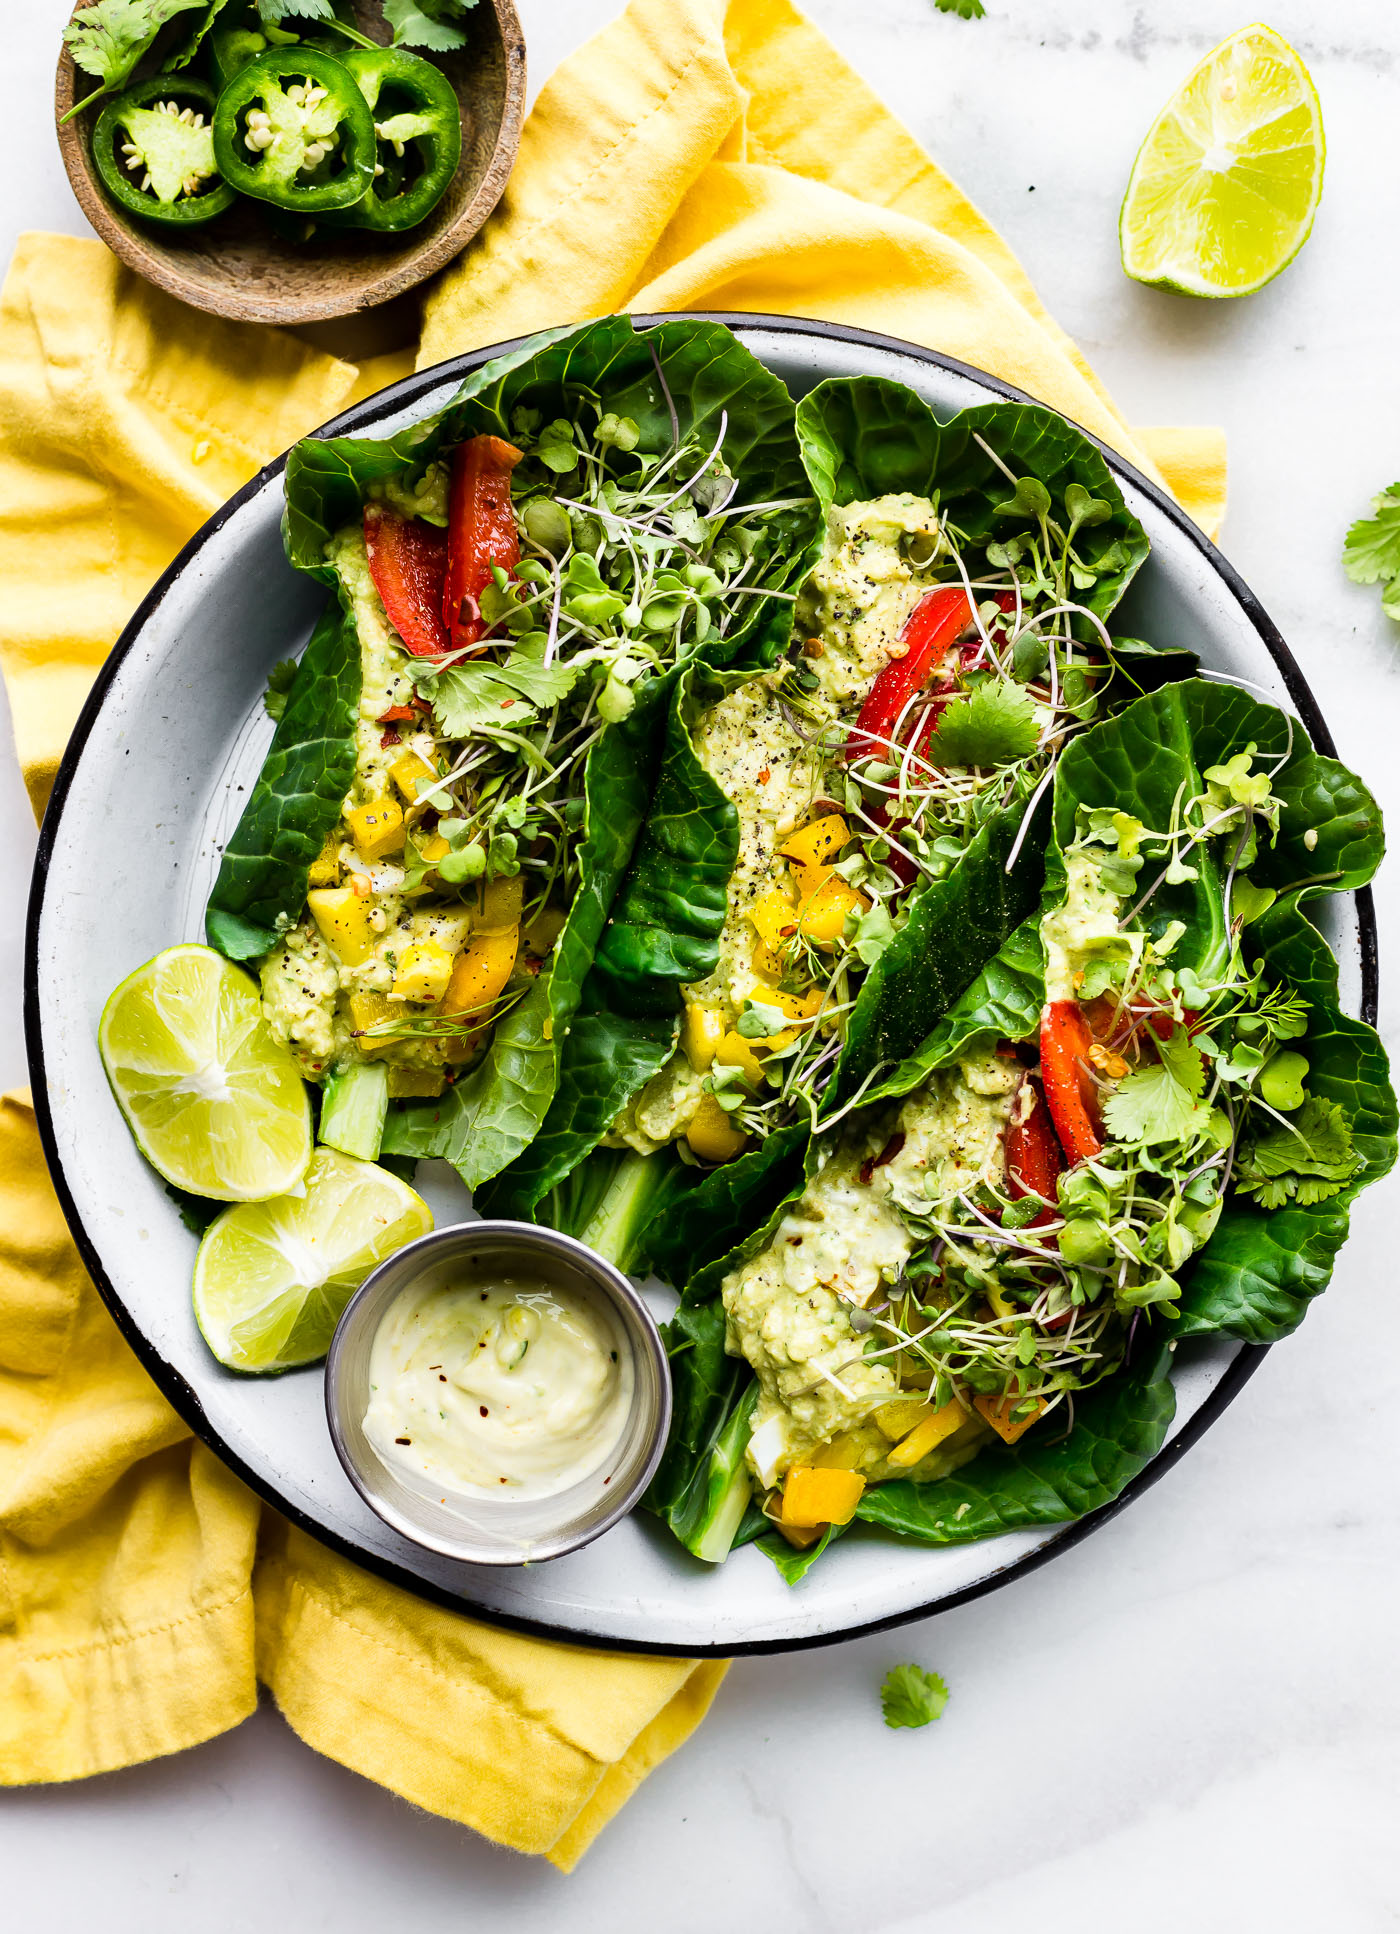 These Mexican avocado egg salad wraps make for a perfect low carb veggie packed lunch! Paleo Avocado Egg Salad seasoned with Mexican spices and jalapeño, then all wrapped up in collard greens! Whole 30 friendly.